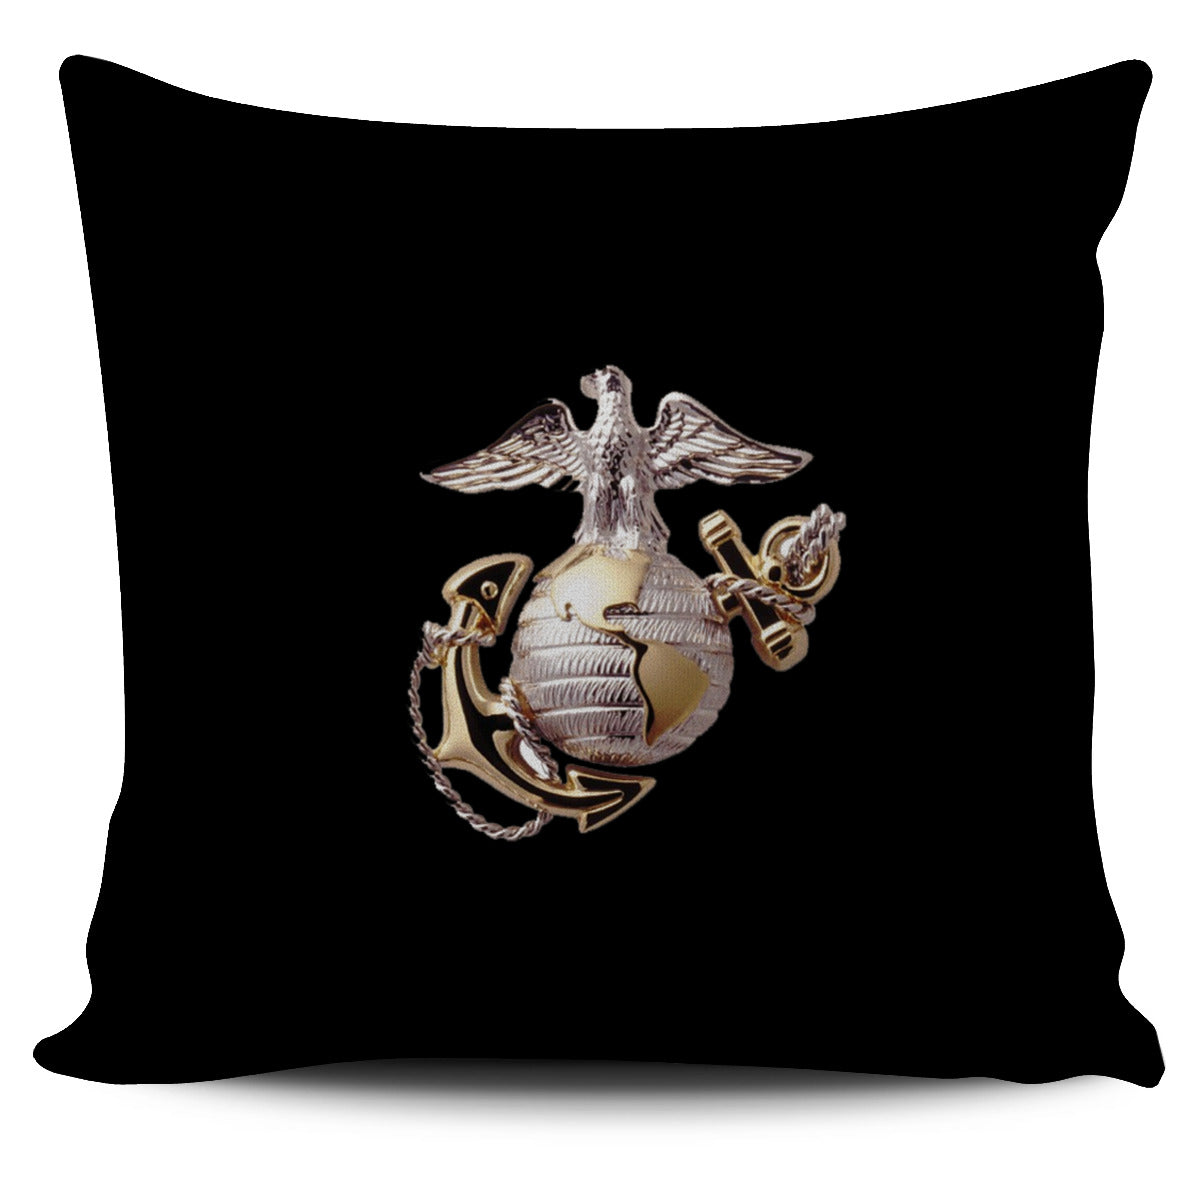 FREE Eagle, Globe, and Anchor Pillow